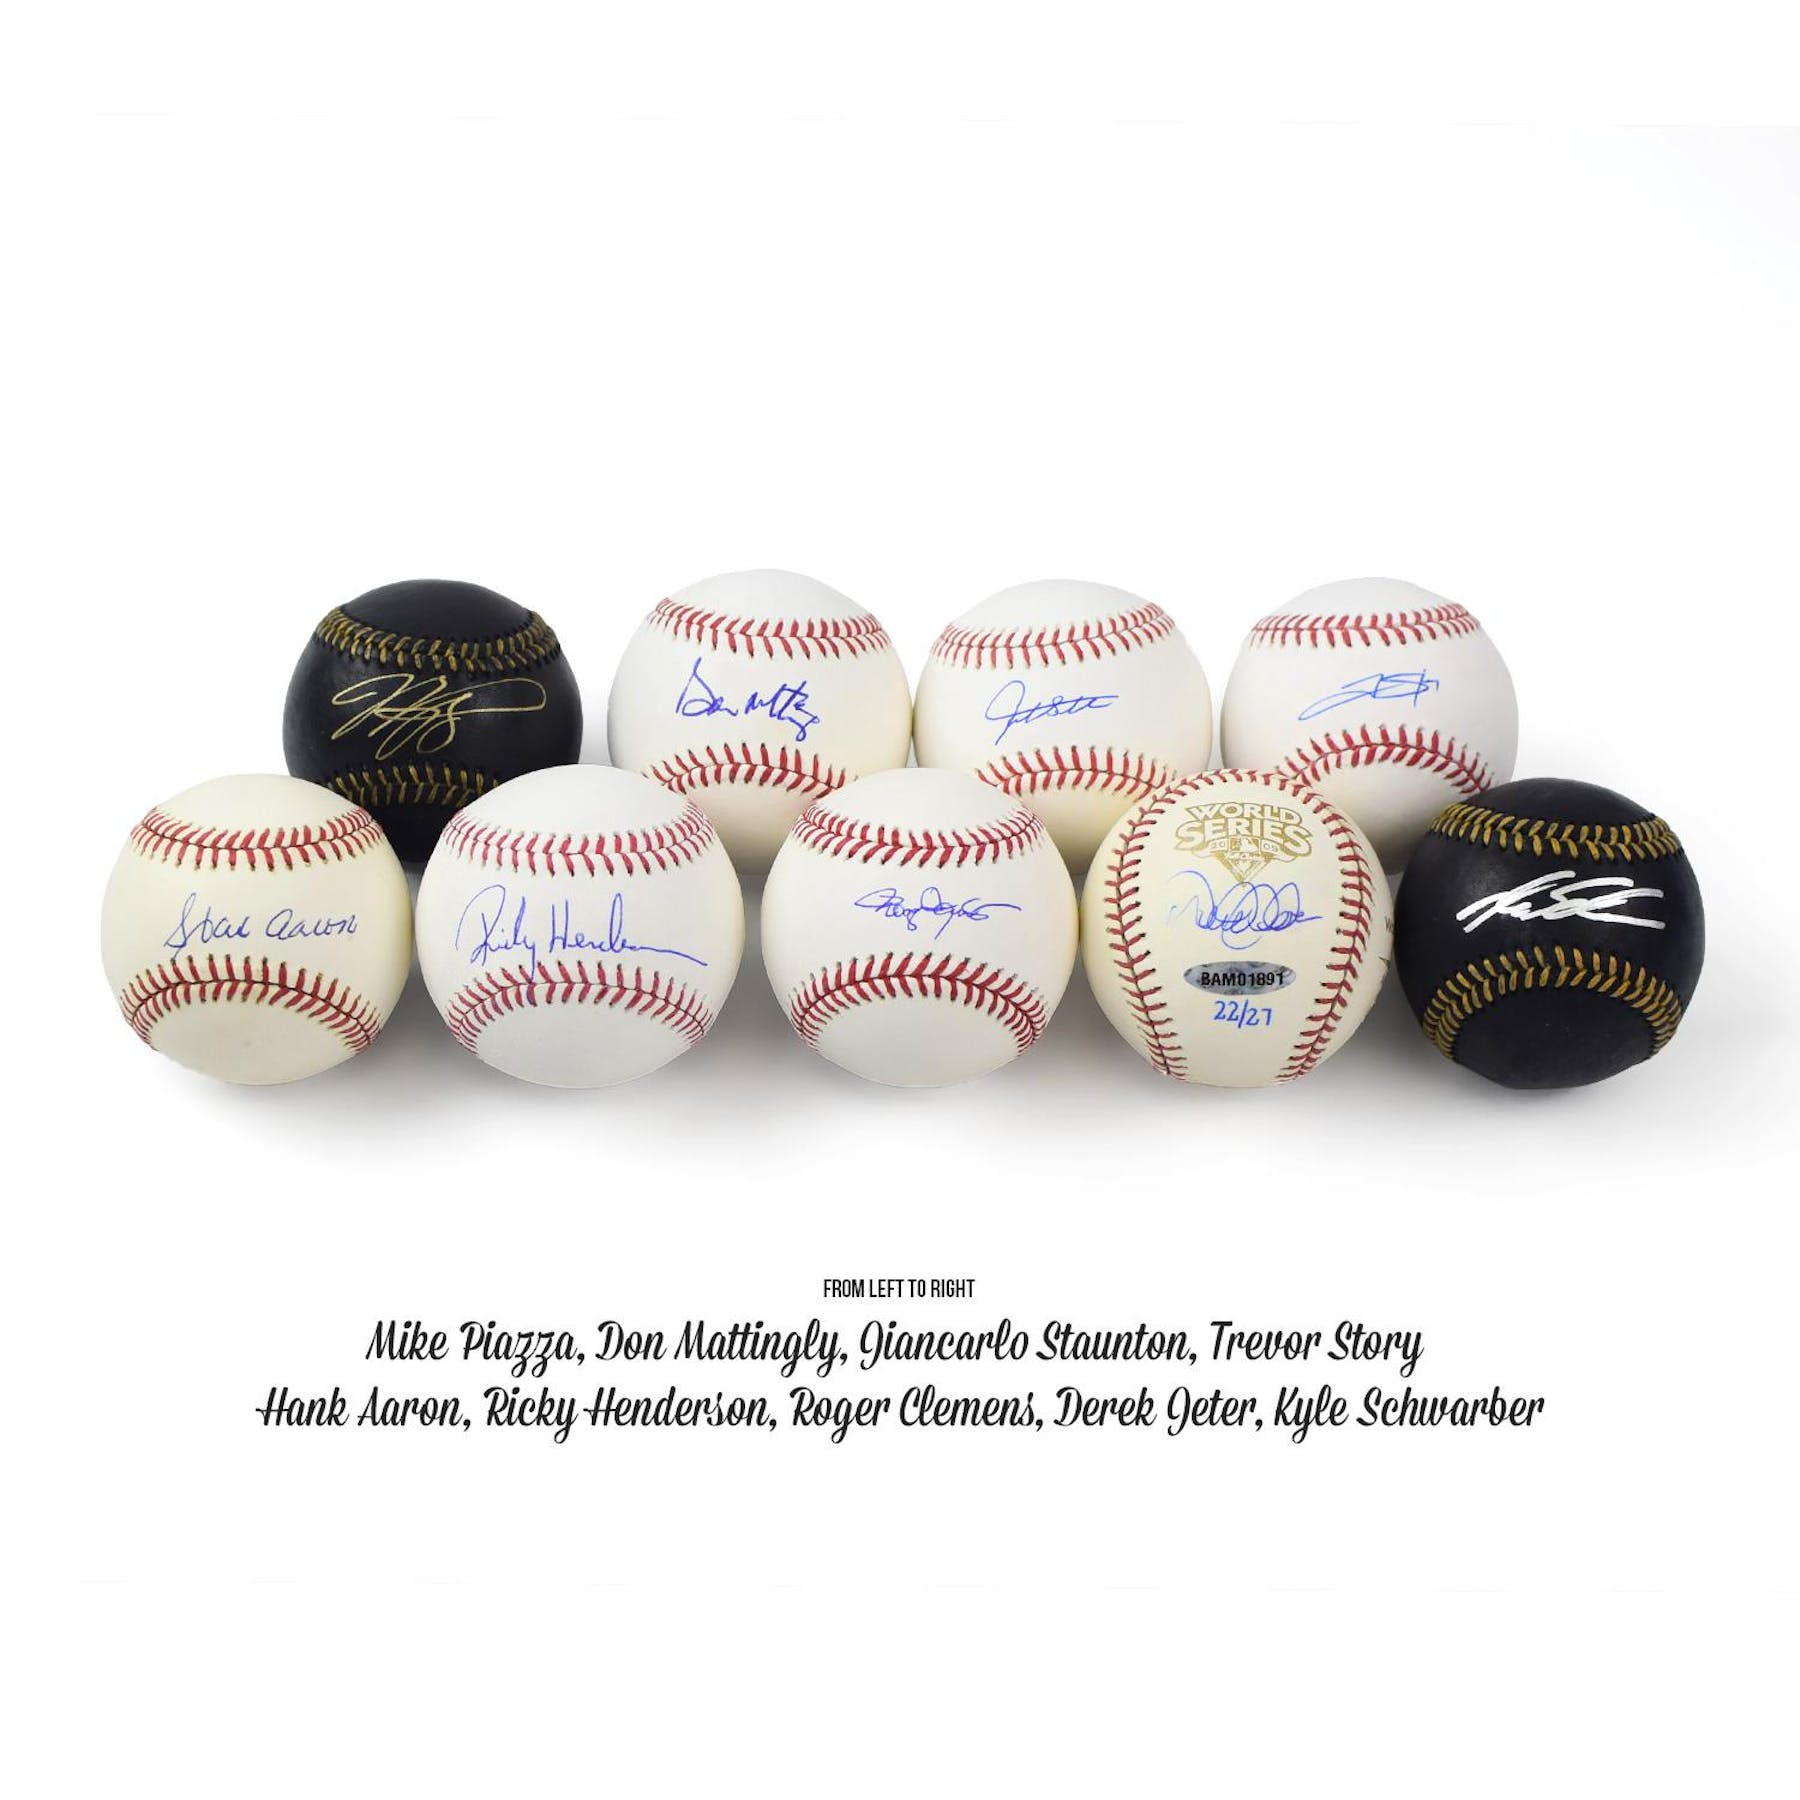 706775696ee ... 2018 Hit Parade Autographed Baseball PERFECT GAME Hobby Box - Series 1  - Derek Jeter